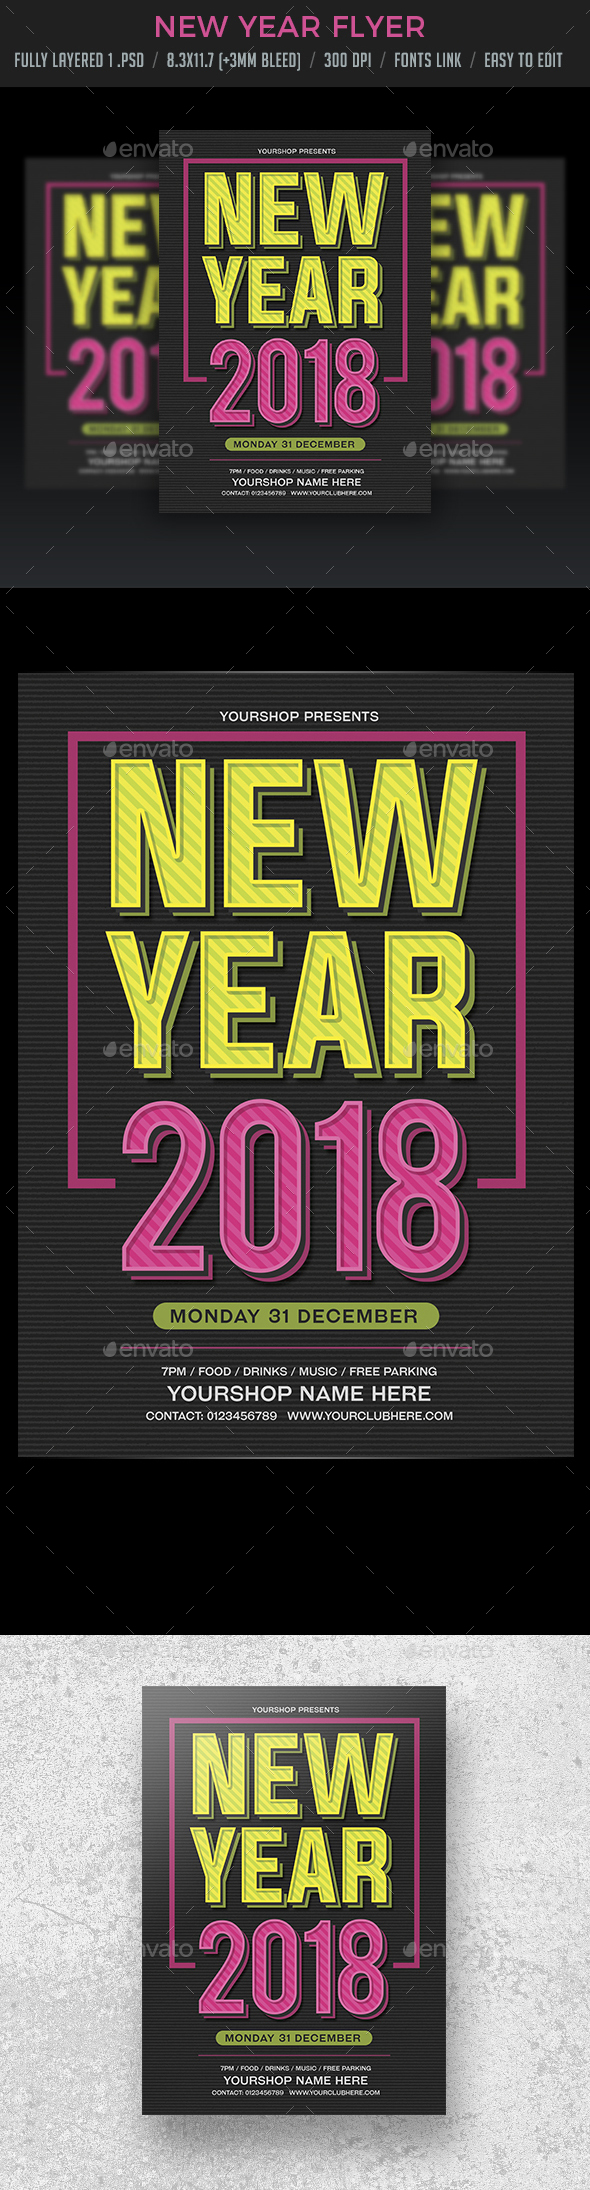 New Year Eve Flyer - Clubs & Parties Events